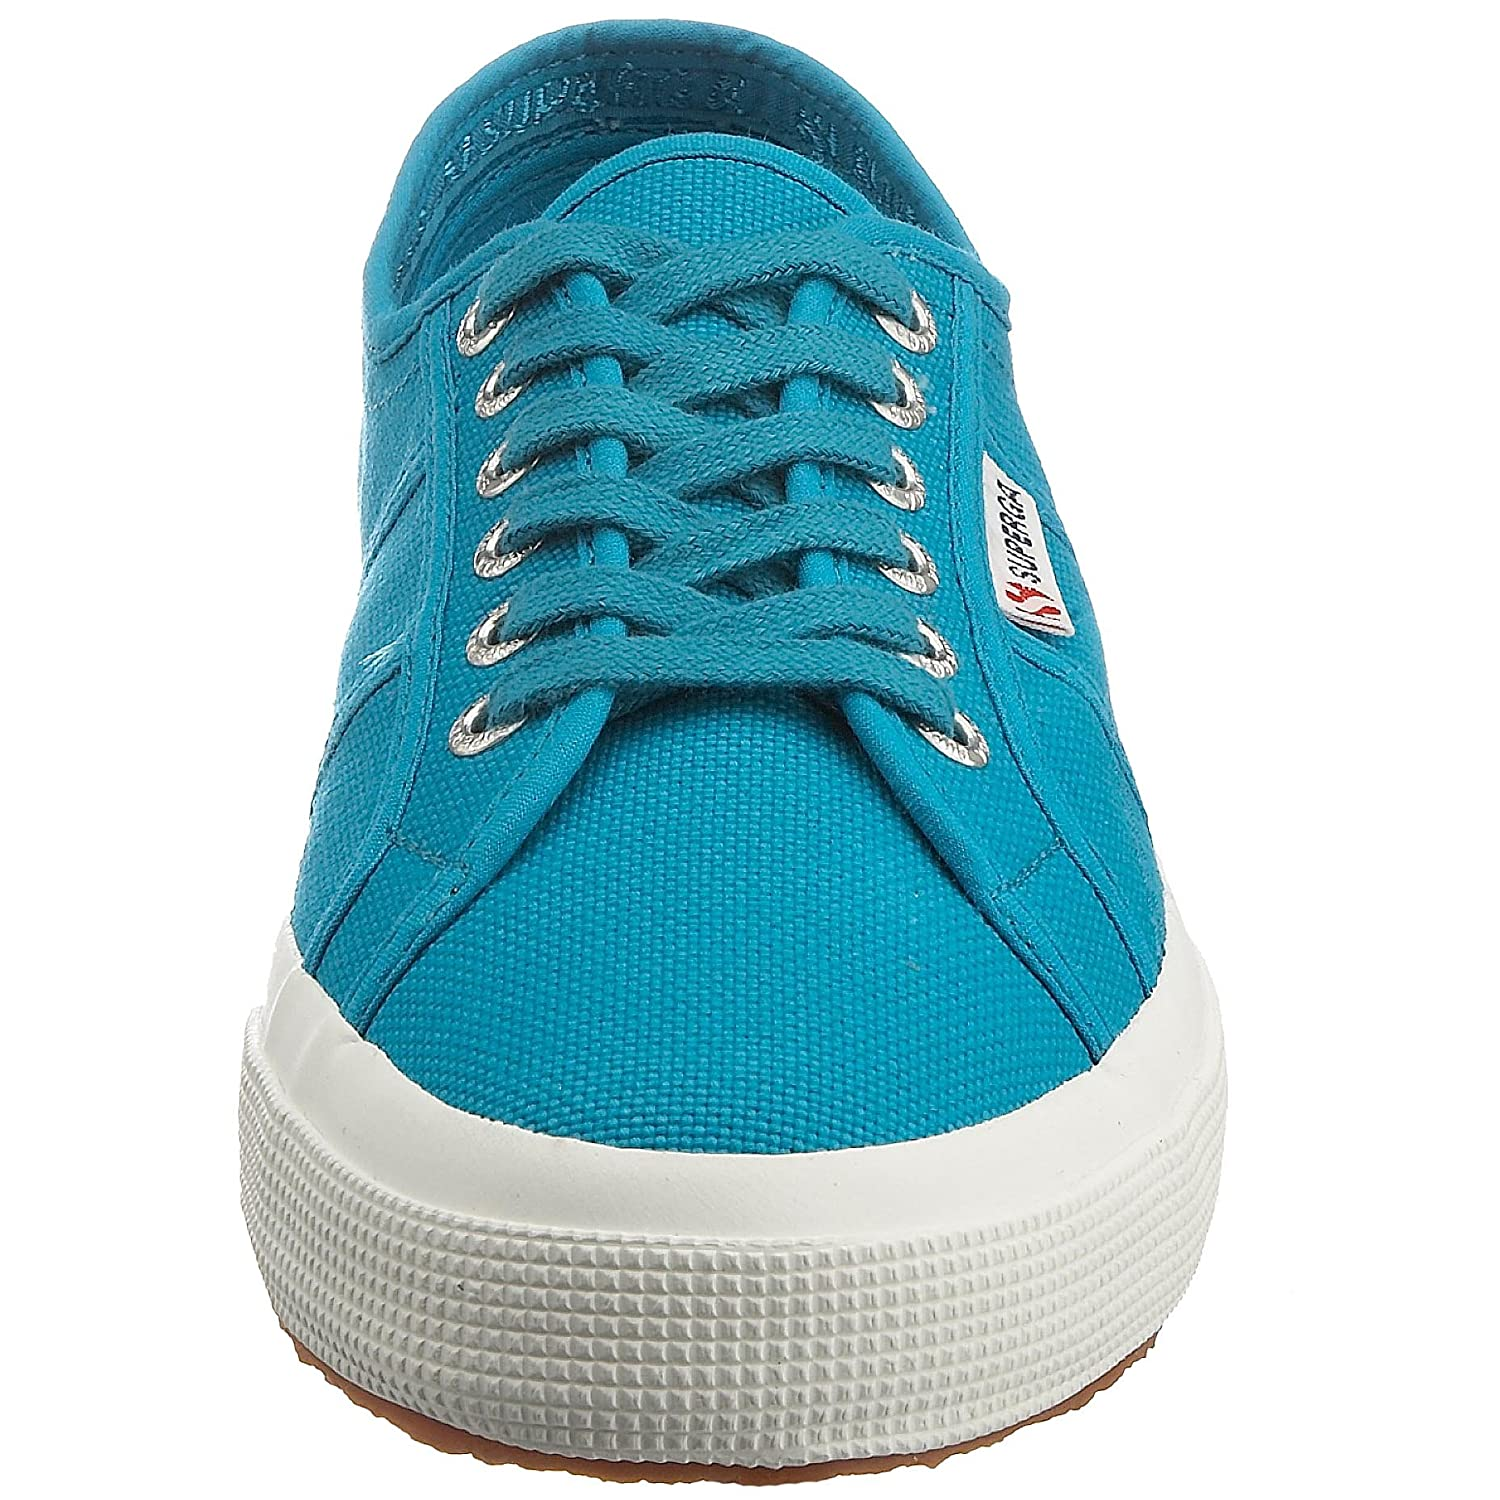 Superga 2750 Cotu Classic, Baskets mixte adulte - Bleu (C52 Blue Caribe) - 35 EU